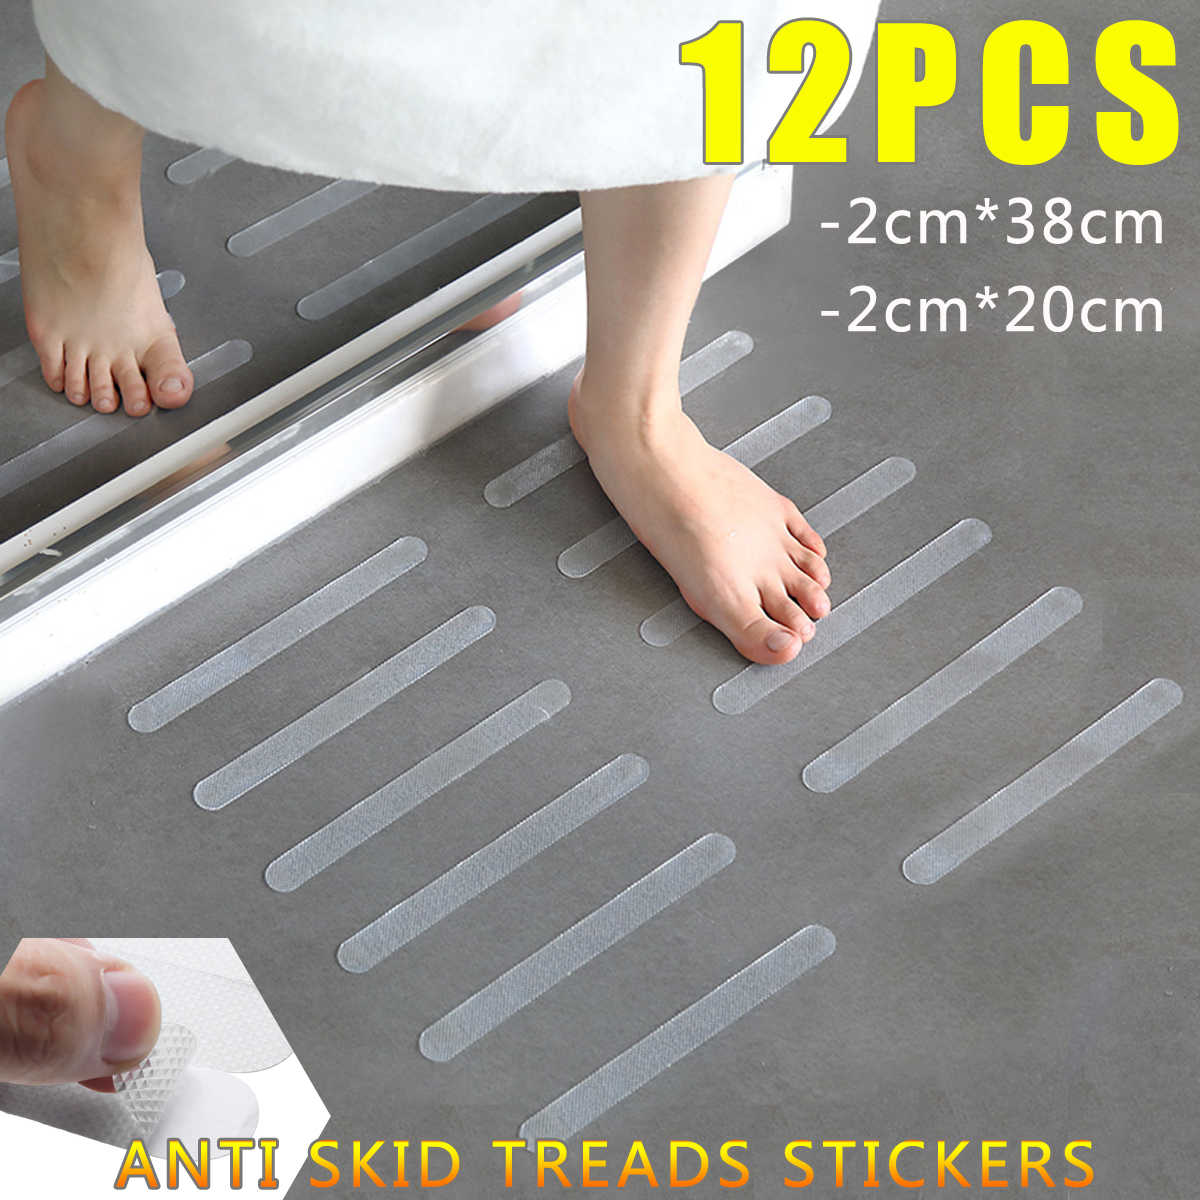 12 stks Badkamer Bad Douche Anti Slip Trap Loopvlak Clear Tape Waterdichte Sterke Floor Veiligheid Mat Grip Sticker Applique Bad decor